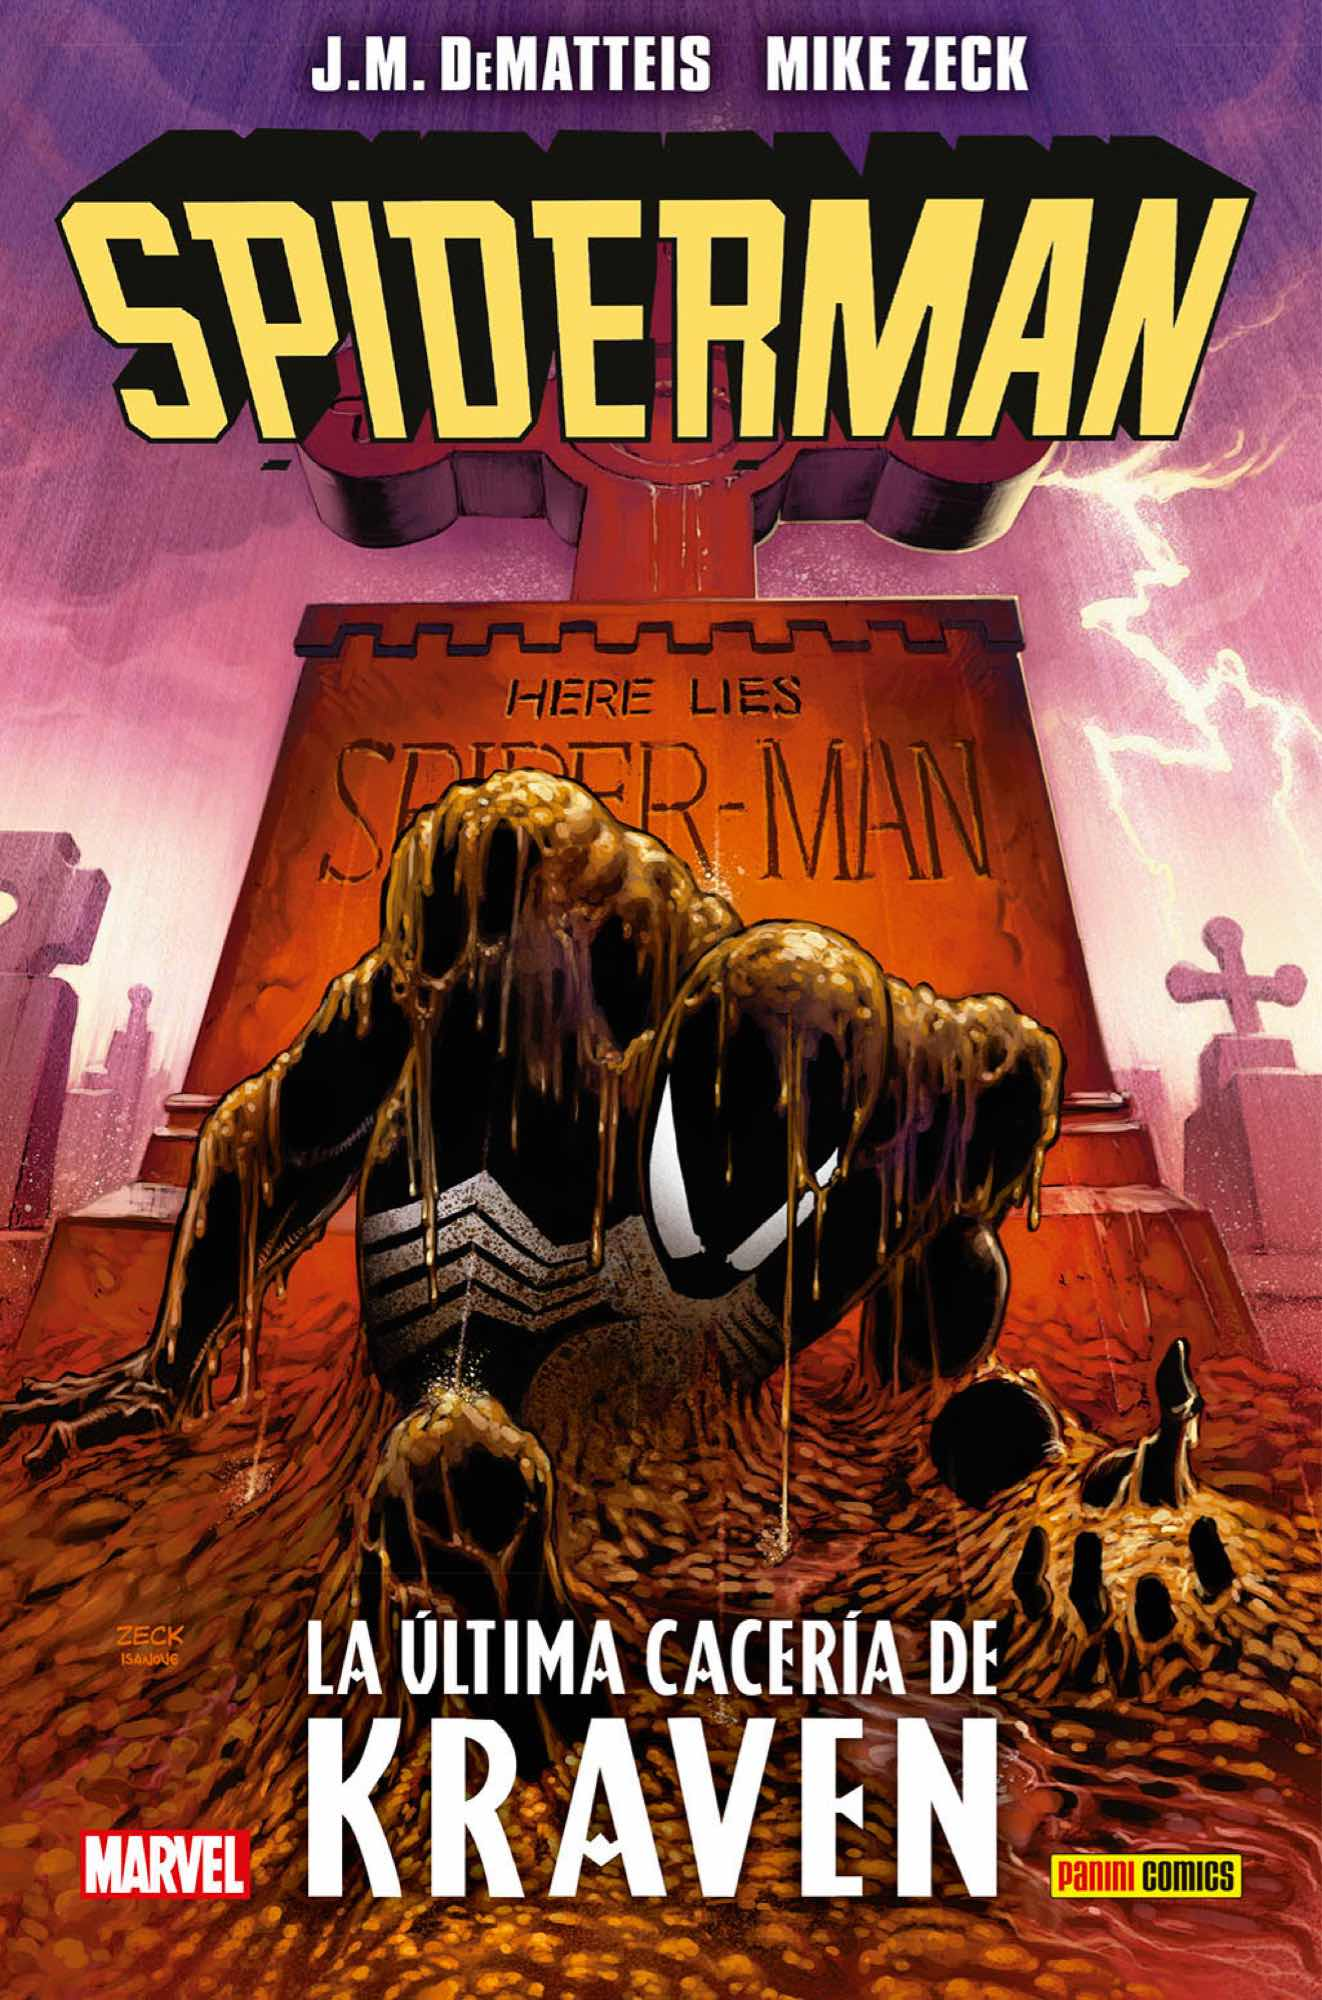 SPIDERMAN: LA ULTIMA CACERIA DE KRAVEN